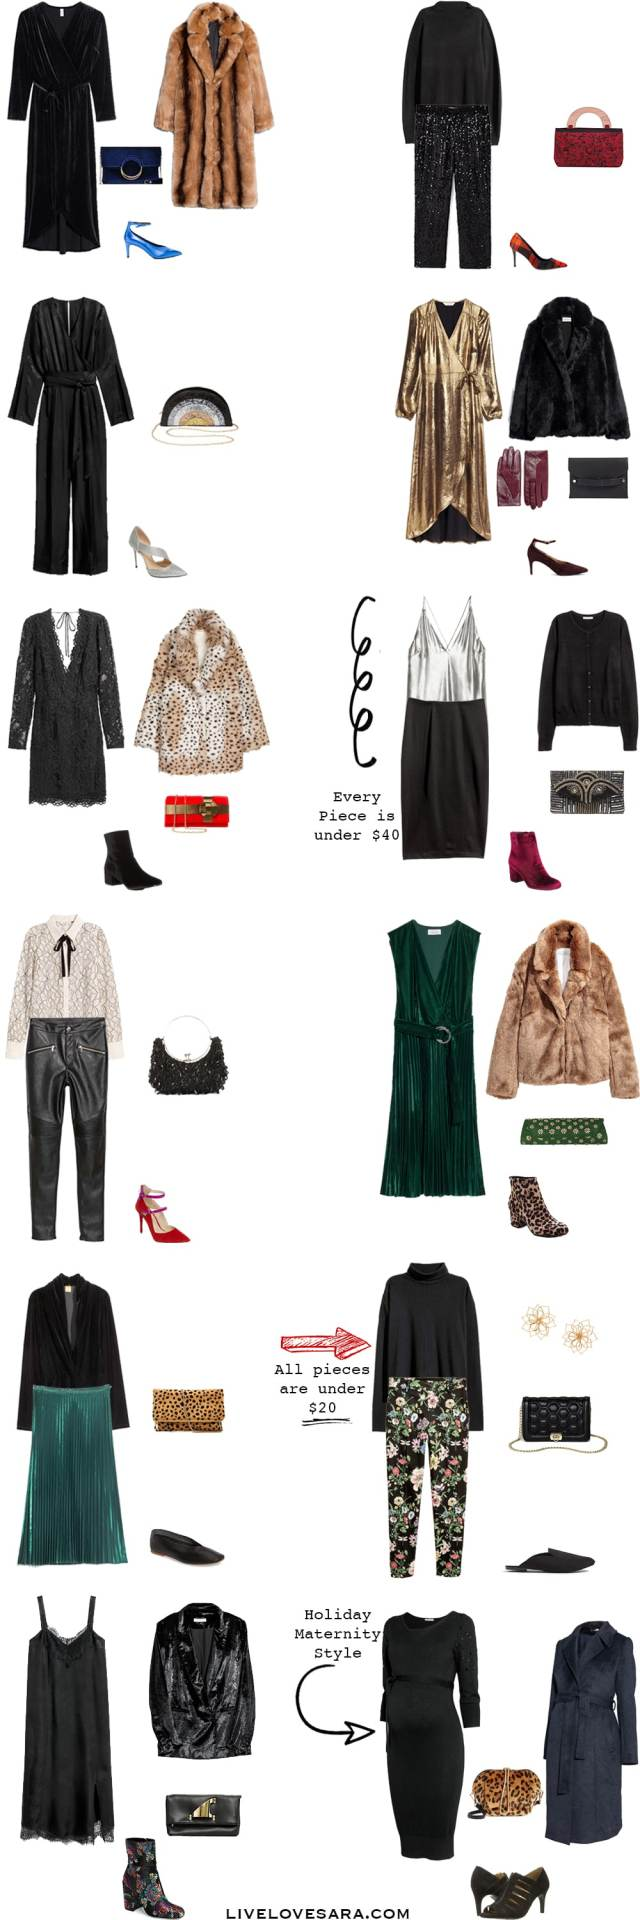 Holiday Style 2017 #holidaystyle #party #whattowear #livelovesara